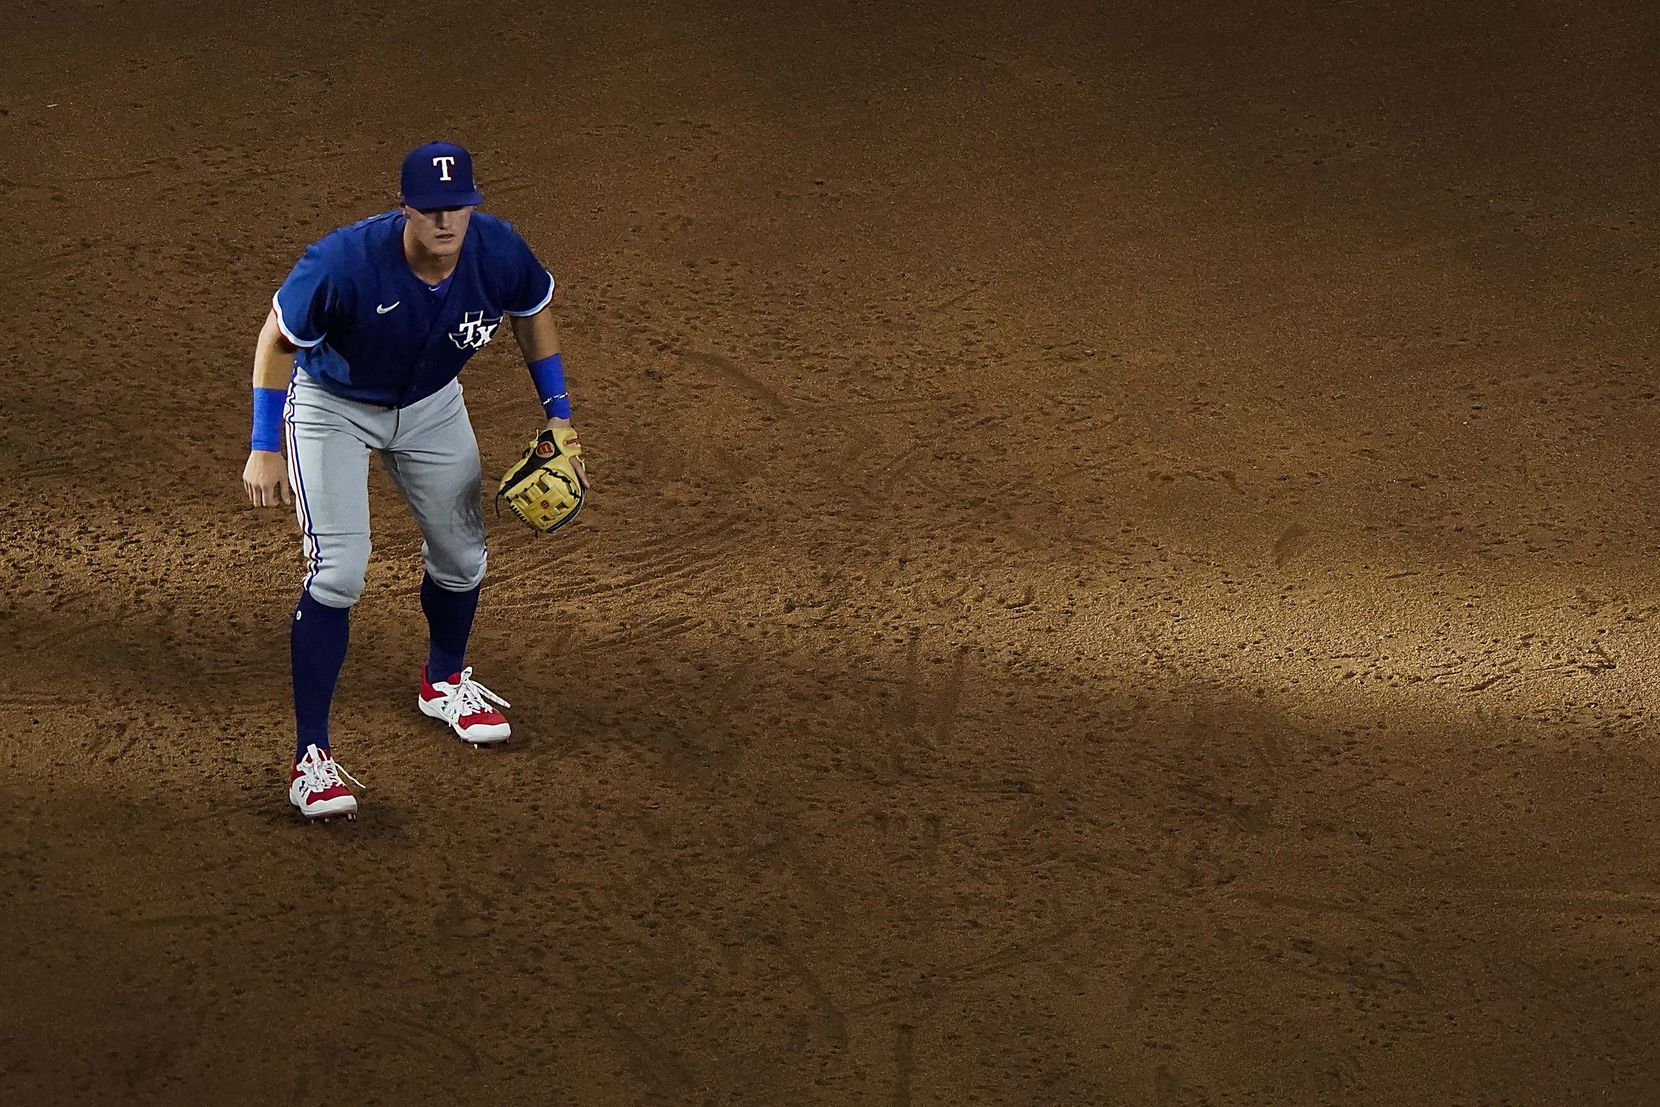 Josh Jung waits for a pitch as sunlight filters across his position at third base in an intrasquad game during Texas Rangers Summer Camp at Globe Life Field on Saturday, July 18, 2020.